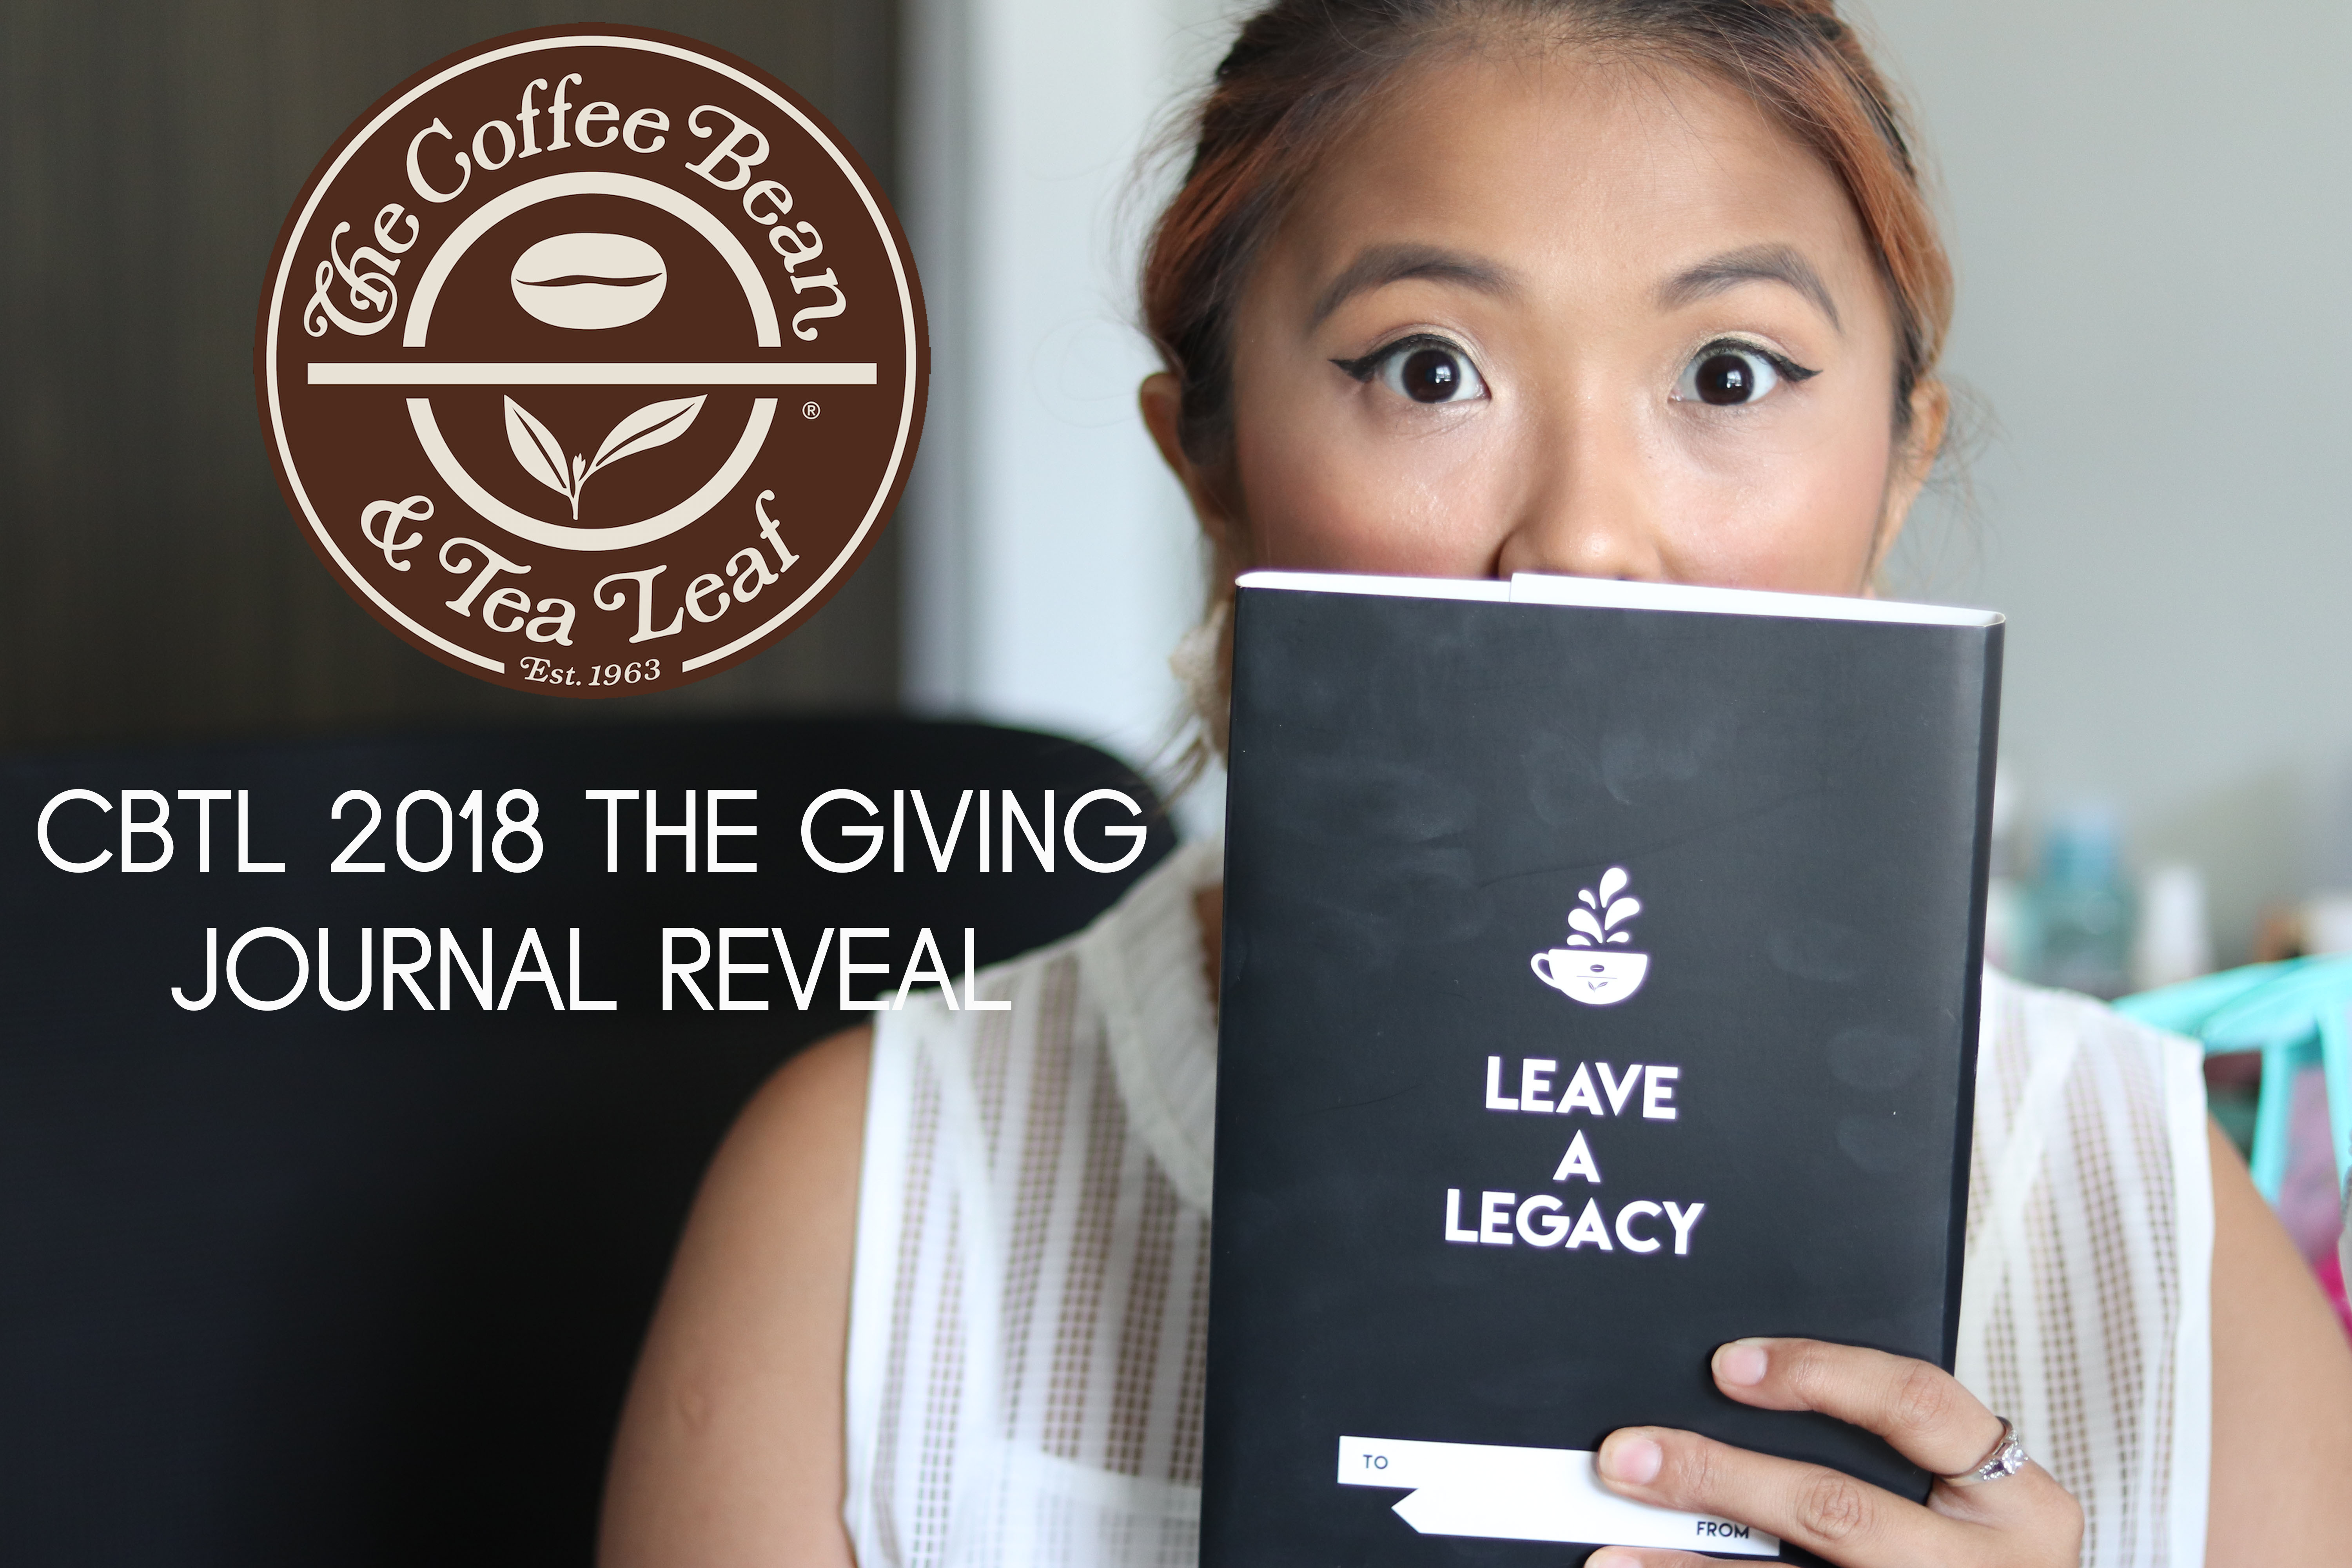 Coffee Bean & Tea Leaf (CBTL) The Giving Journal 2018 Reveal and Review